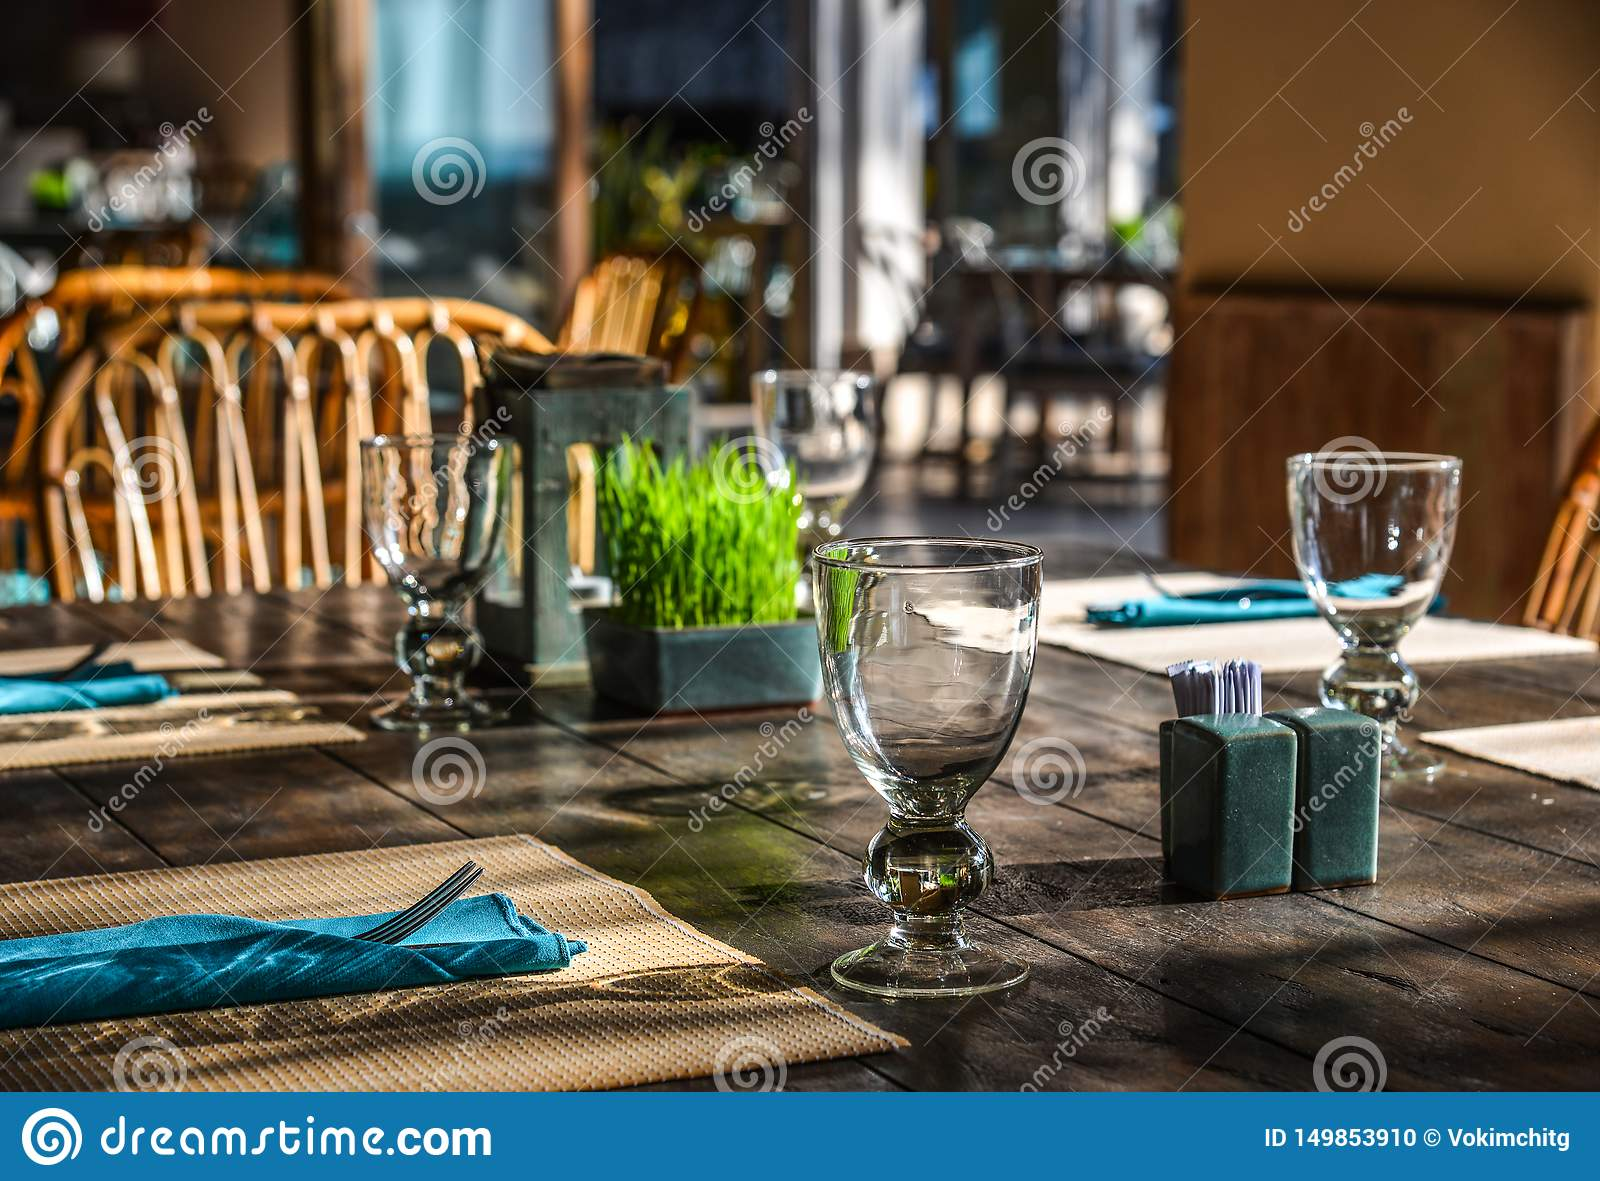 Outdoor Furniture In The Luxury Restaurant Stock Photo Image Of Lunch Design 149853910